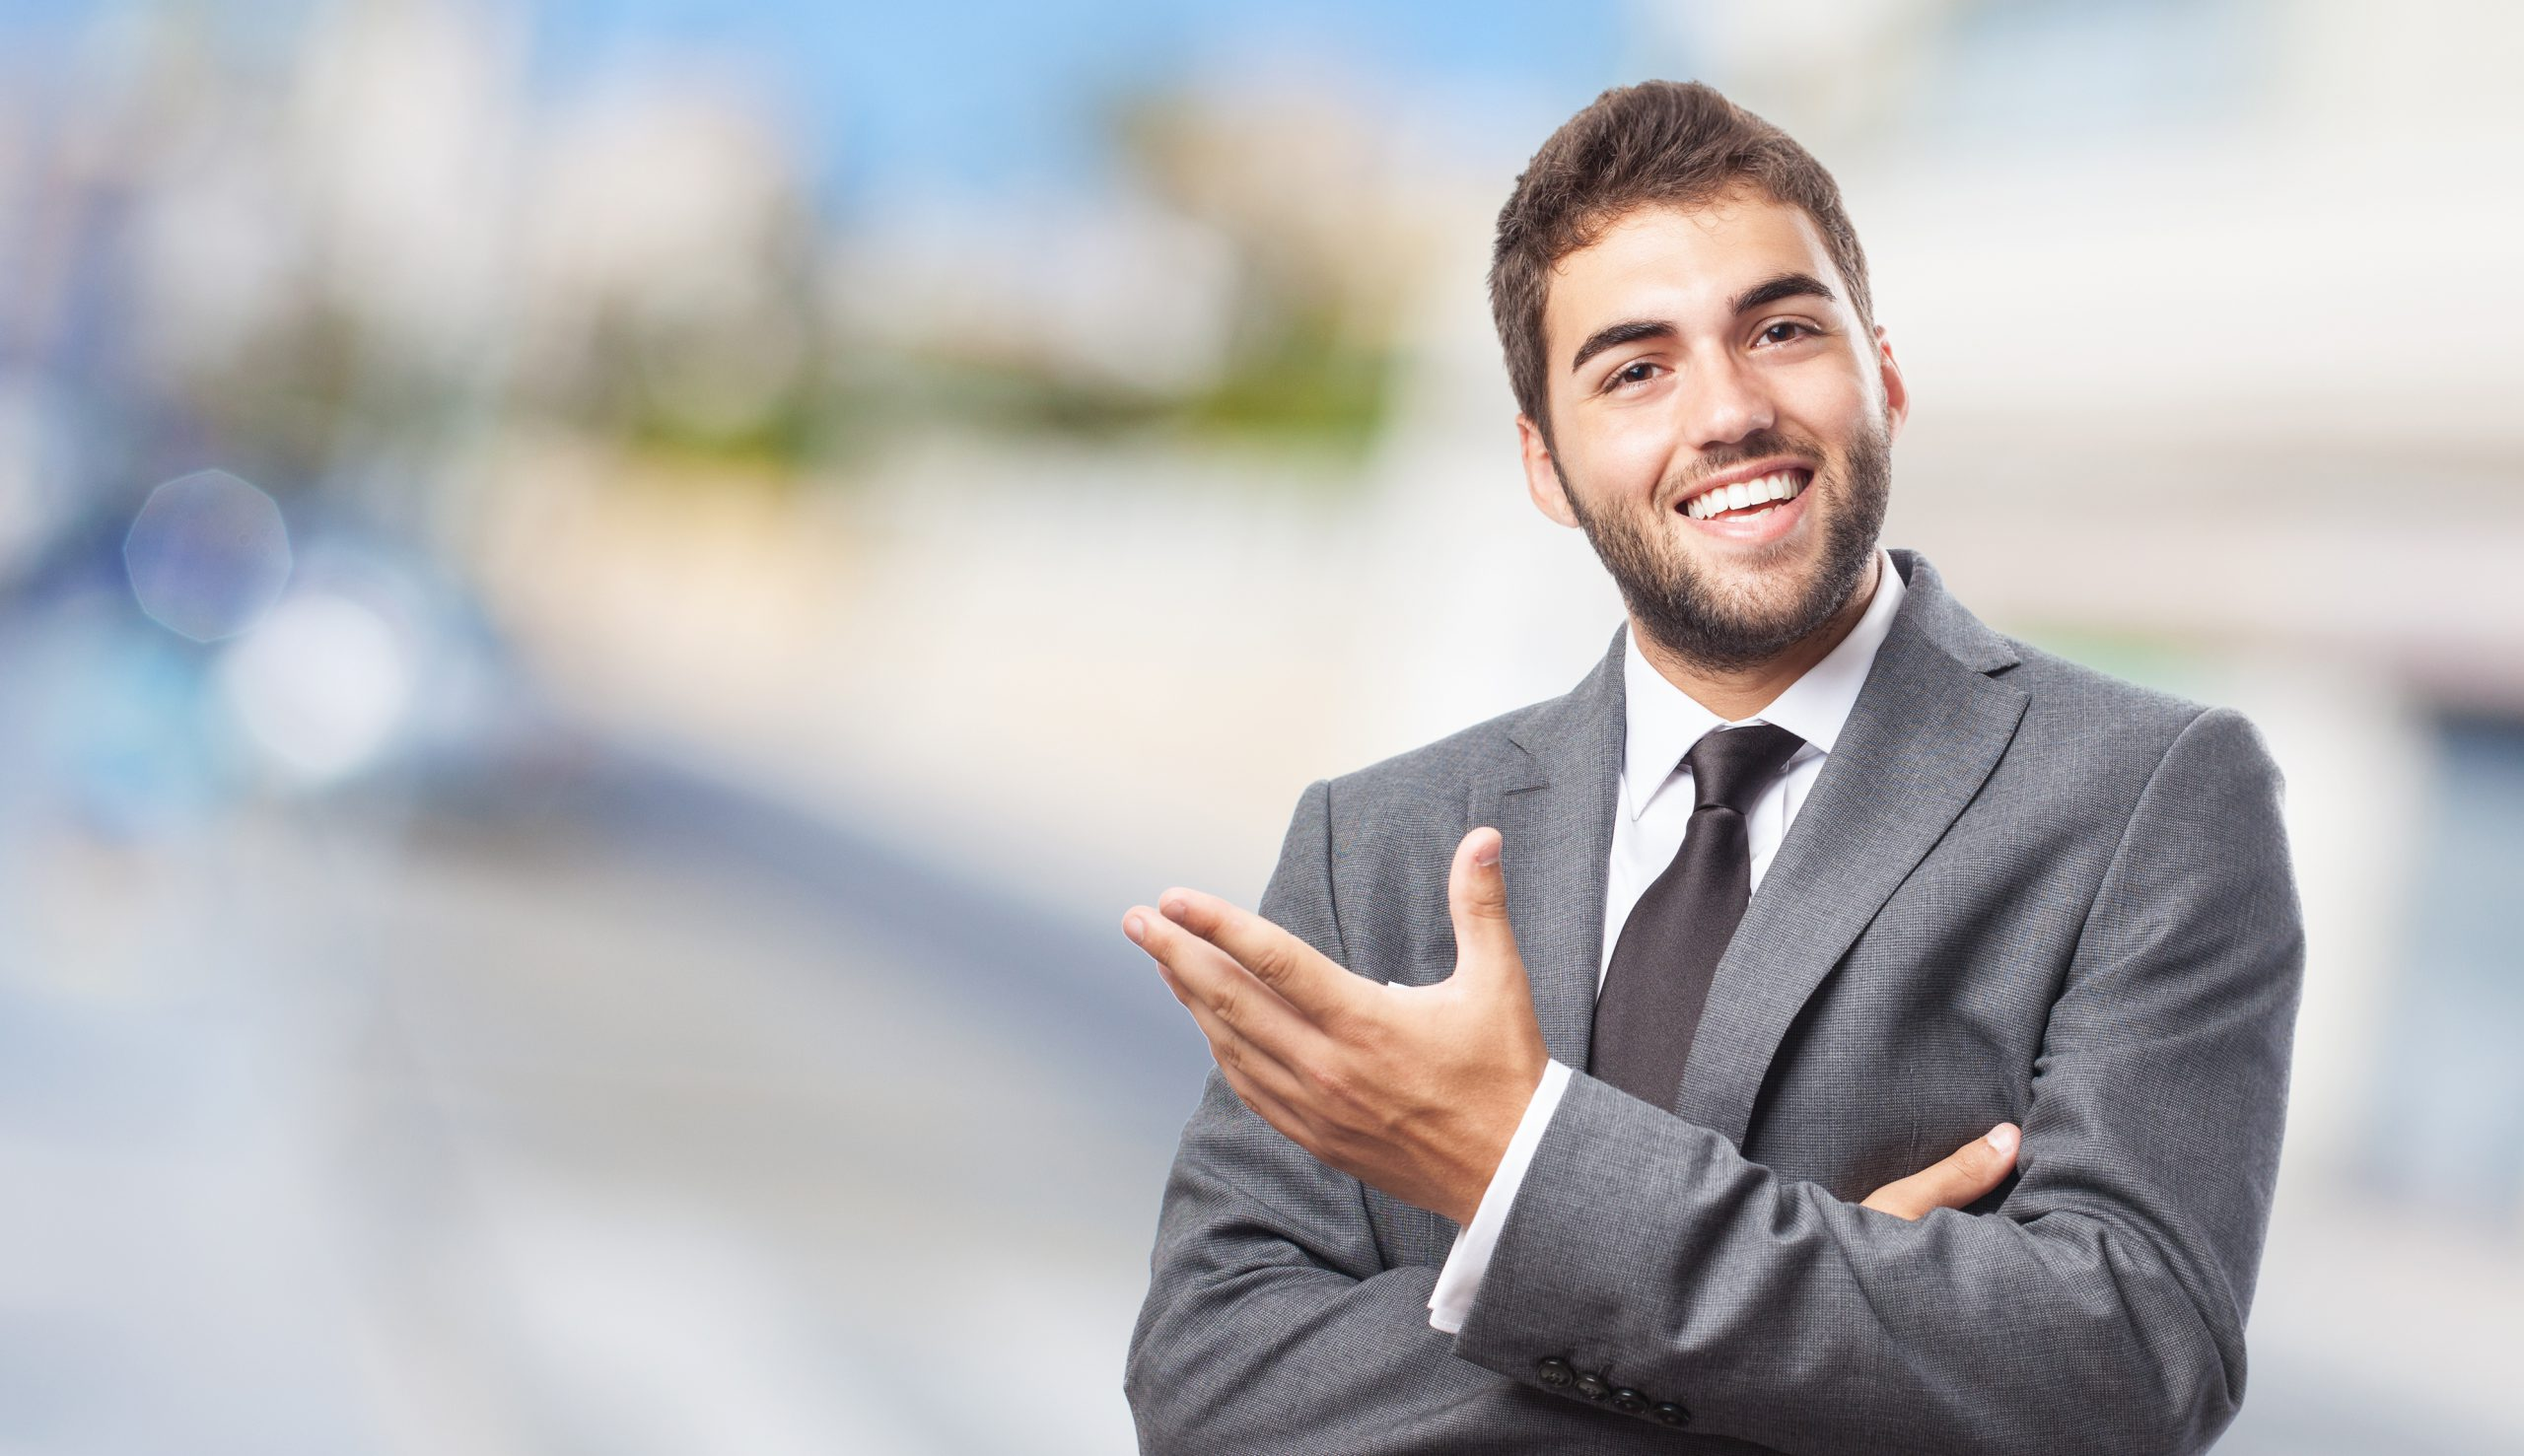 Tips to set expectations of a manager